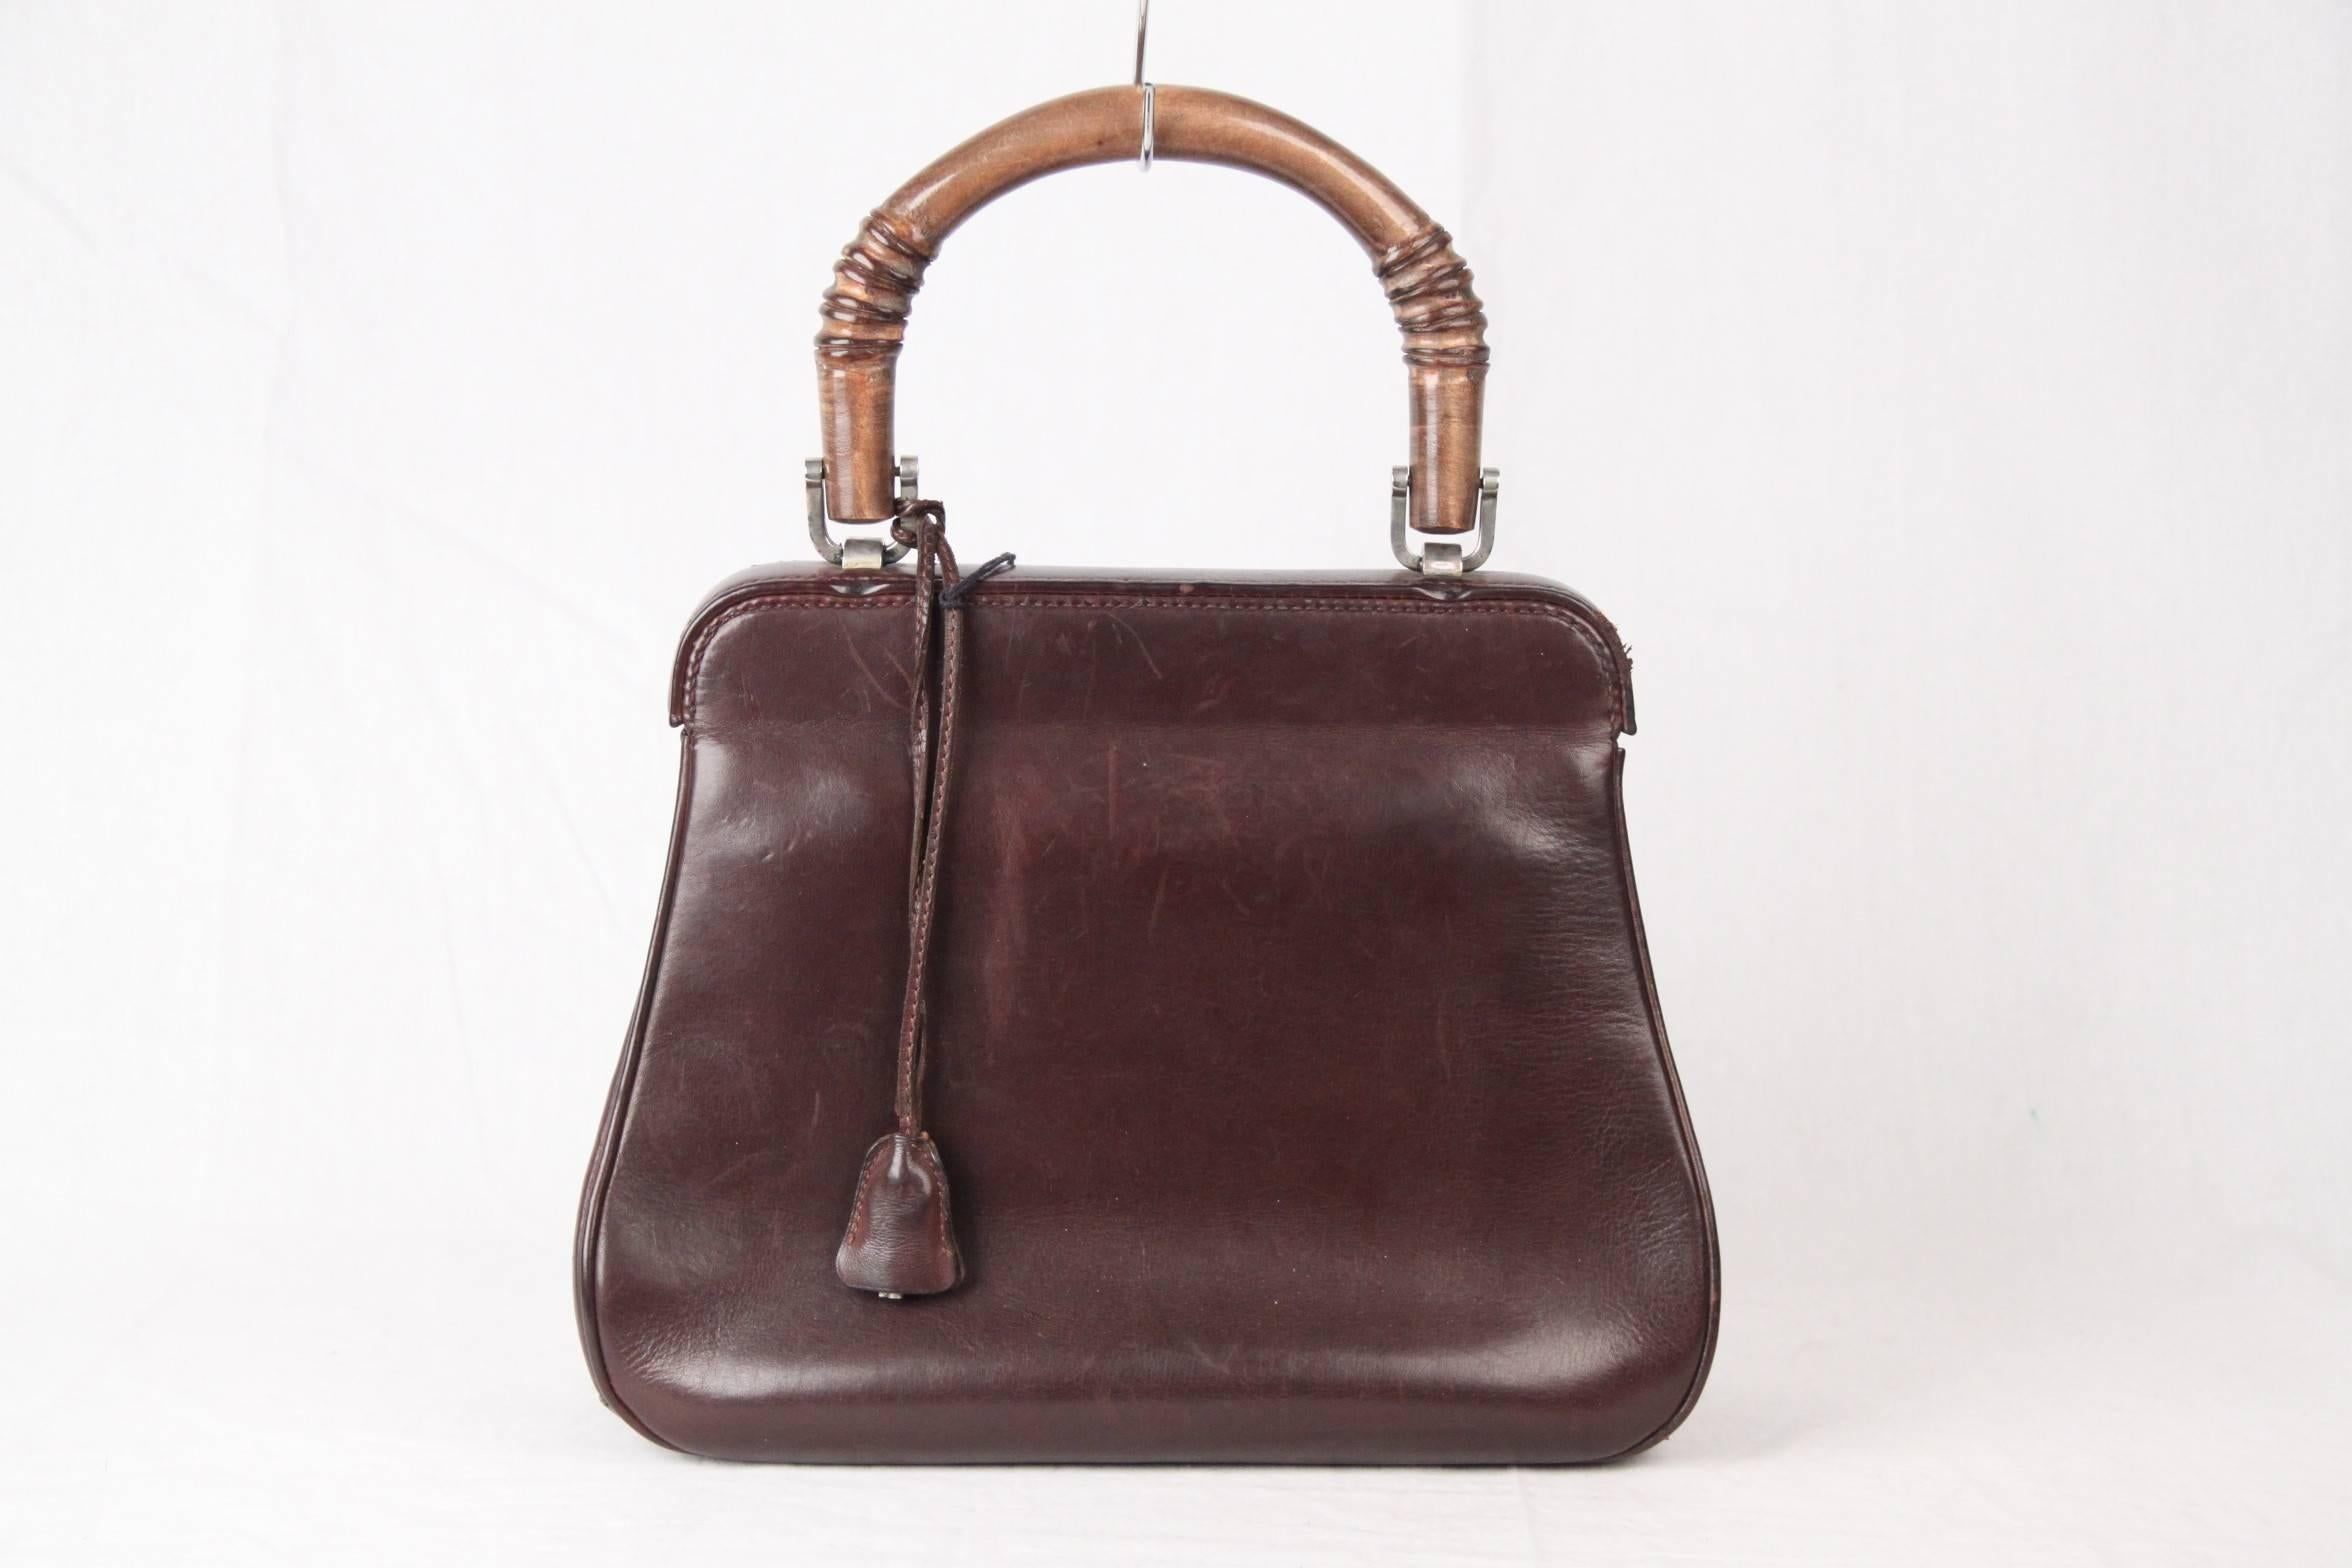 09a16f36bf GUCCI Rare VINTAGE 50s Brown Leather LADY LOCK BAG Original Issue at 1stdibs